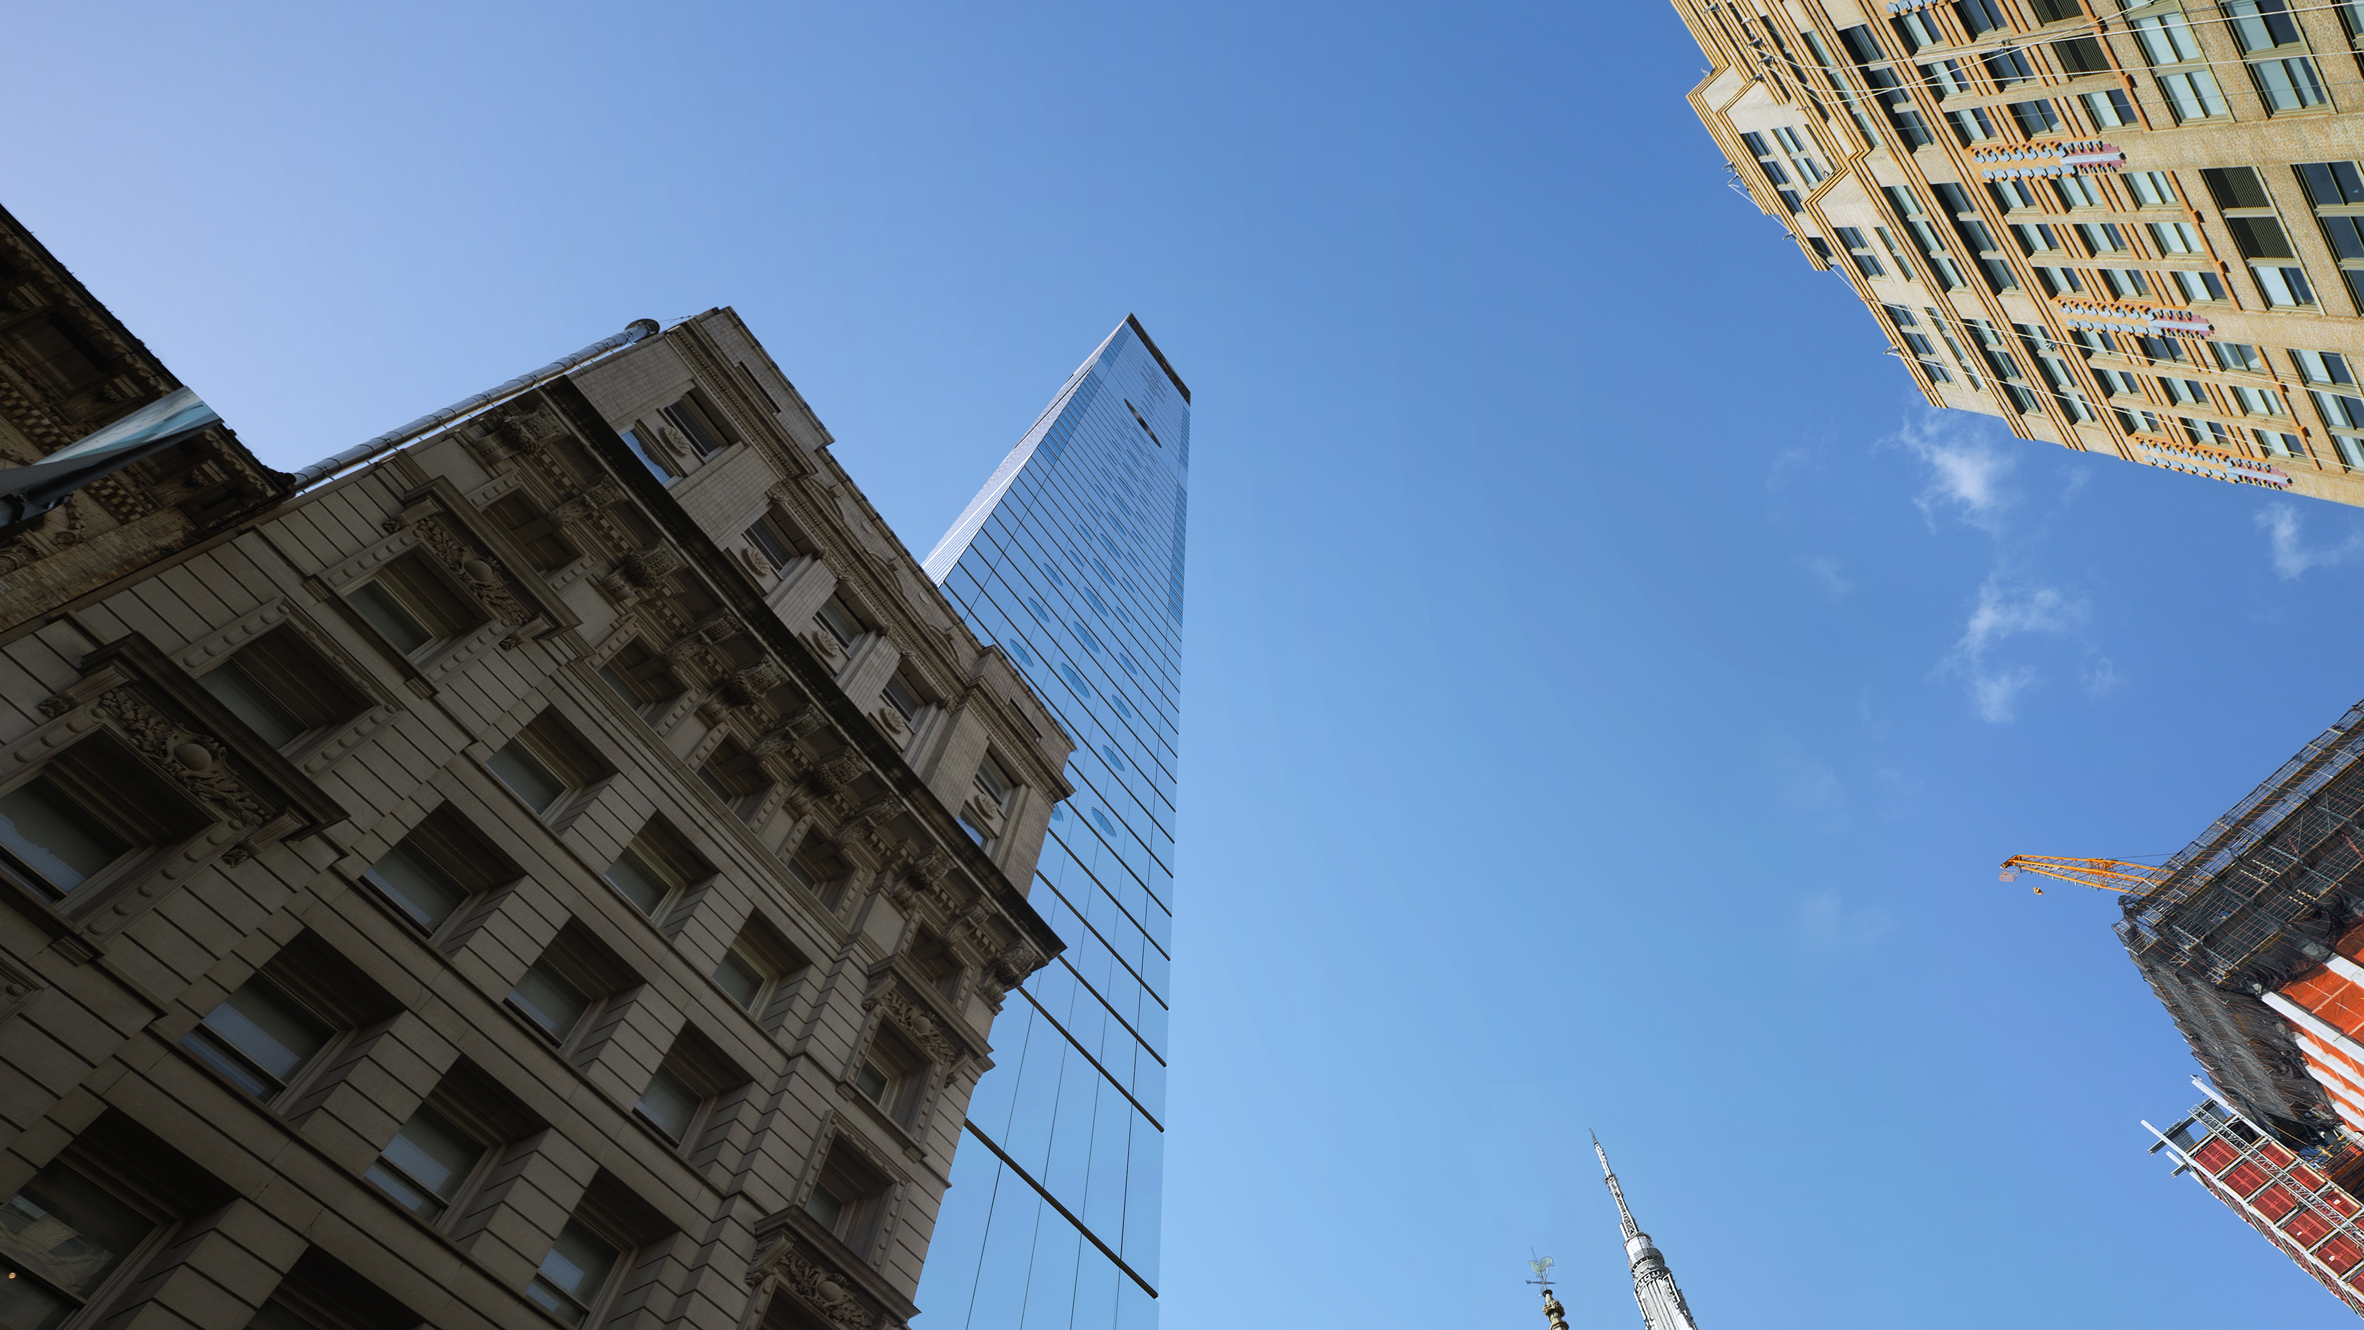 262 Fifth Avenue by Meganom